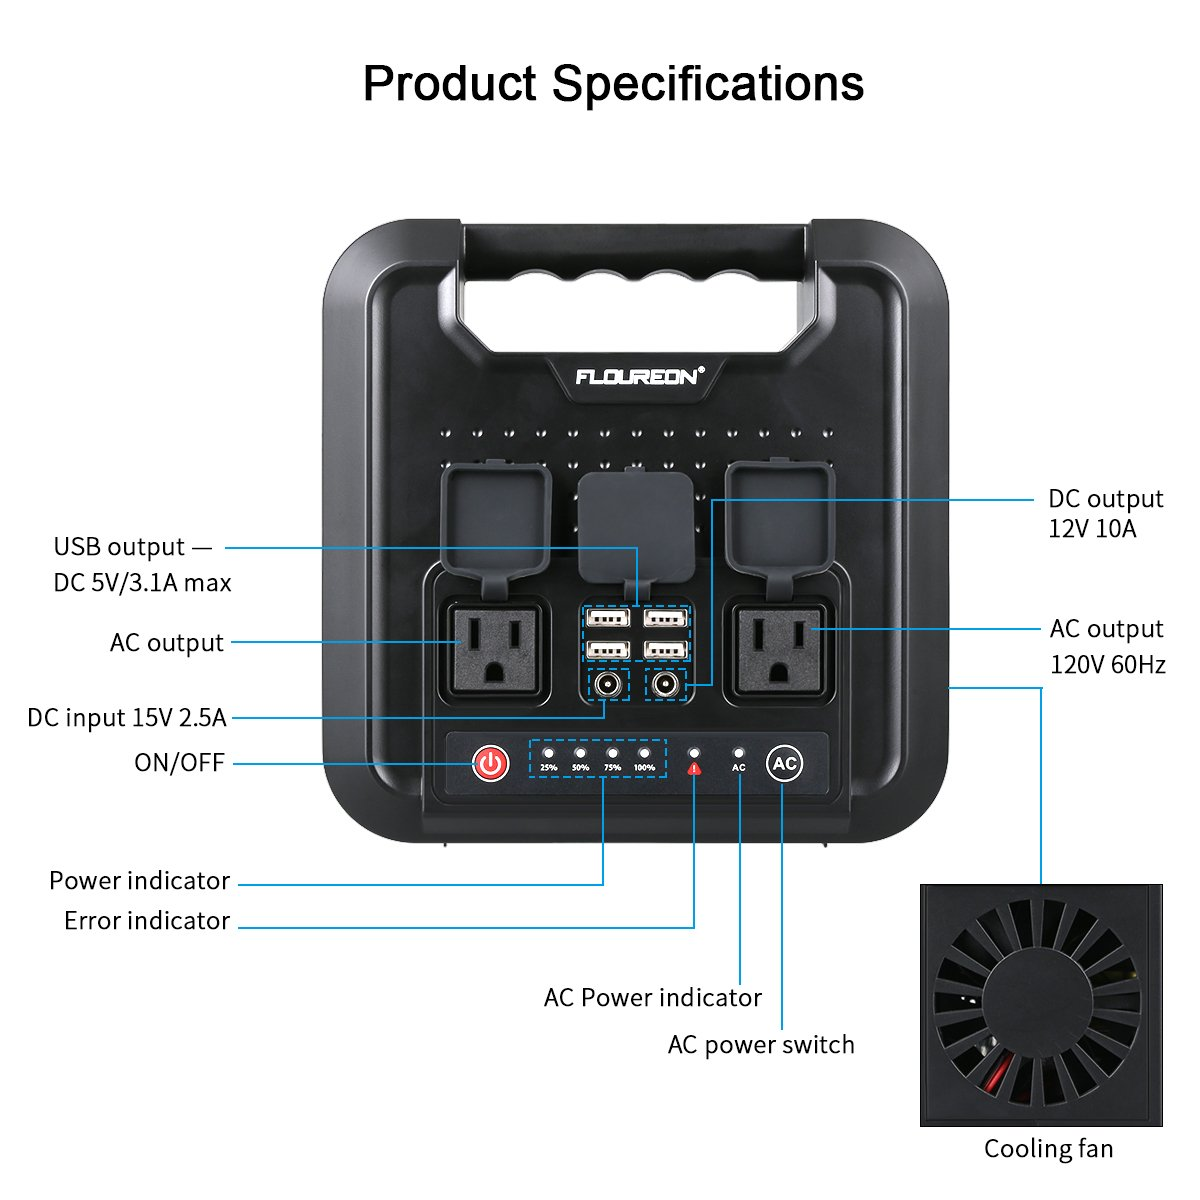 floureon Portable Power Station 220wh/300W 64800mAh High Capacity Portable Camping Generator Power Supply with Dual 110V AC Outlet, 2 DC Ports, 4 USB Ports Emergency Backup for Road Trip Camping CPAP by floureon (Image #3)